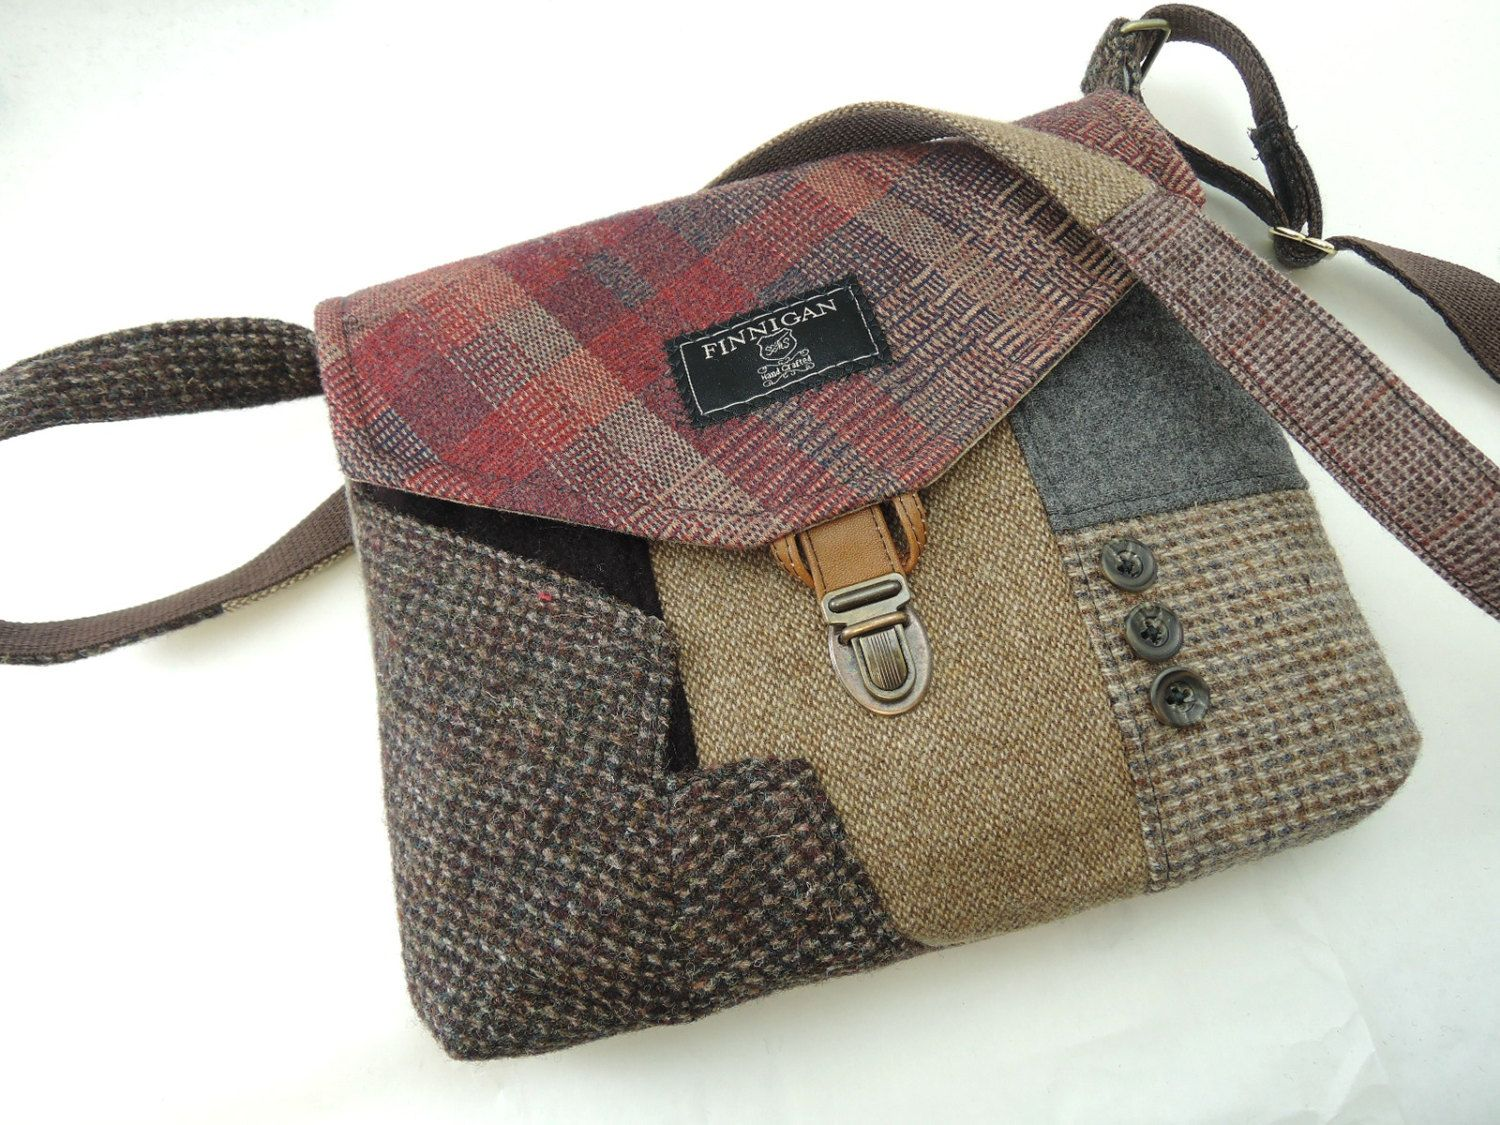 Crossbody bag, Crossbody Purse, Recycled Crossbody Purse, Handbag, Recycled wool, iPhone pocket,Recycled mens suit coat, Ready to Ship by SewMuchStyle on Etsy